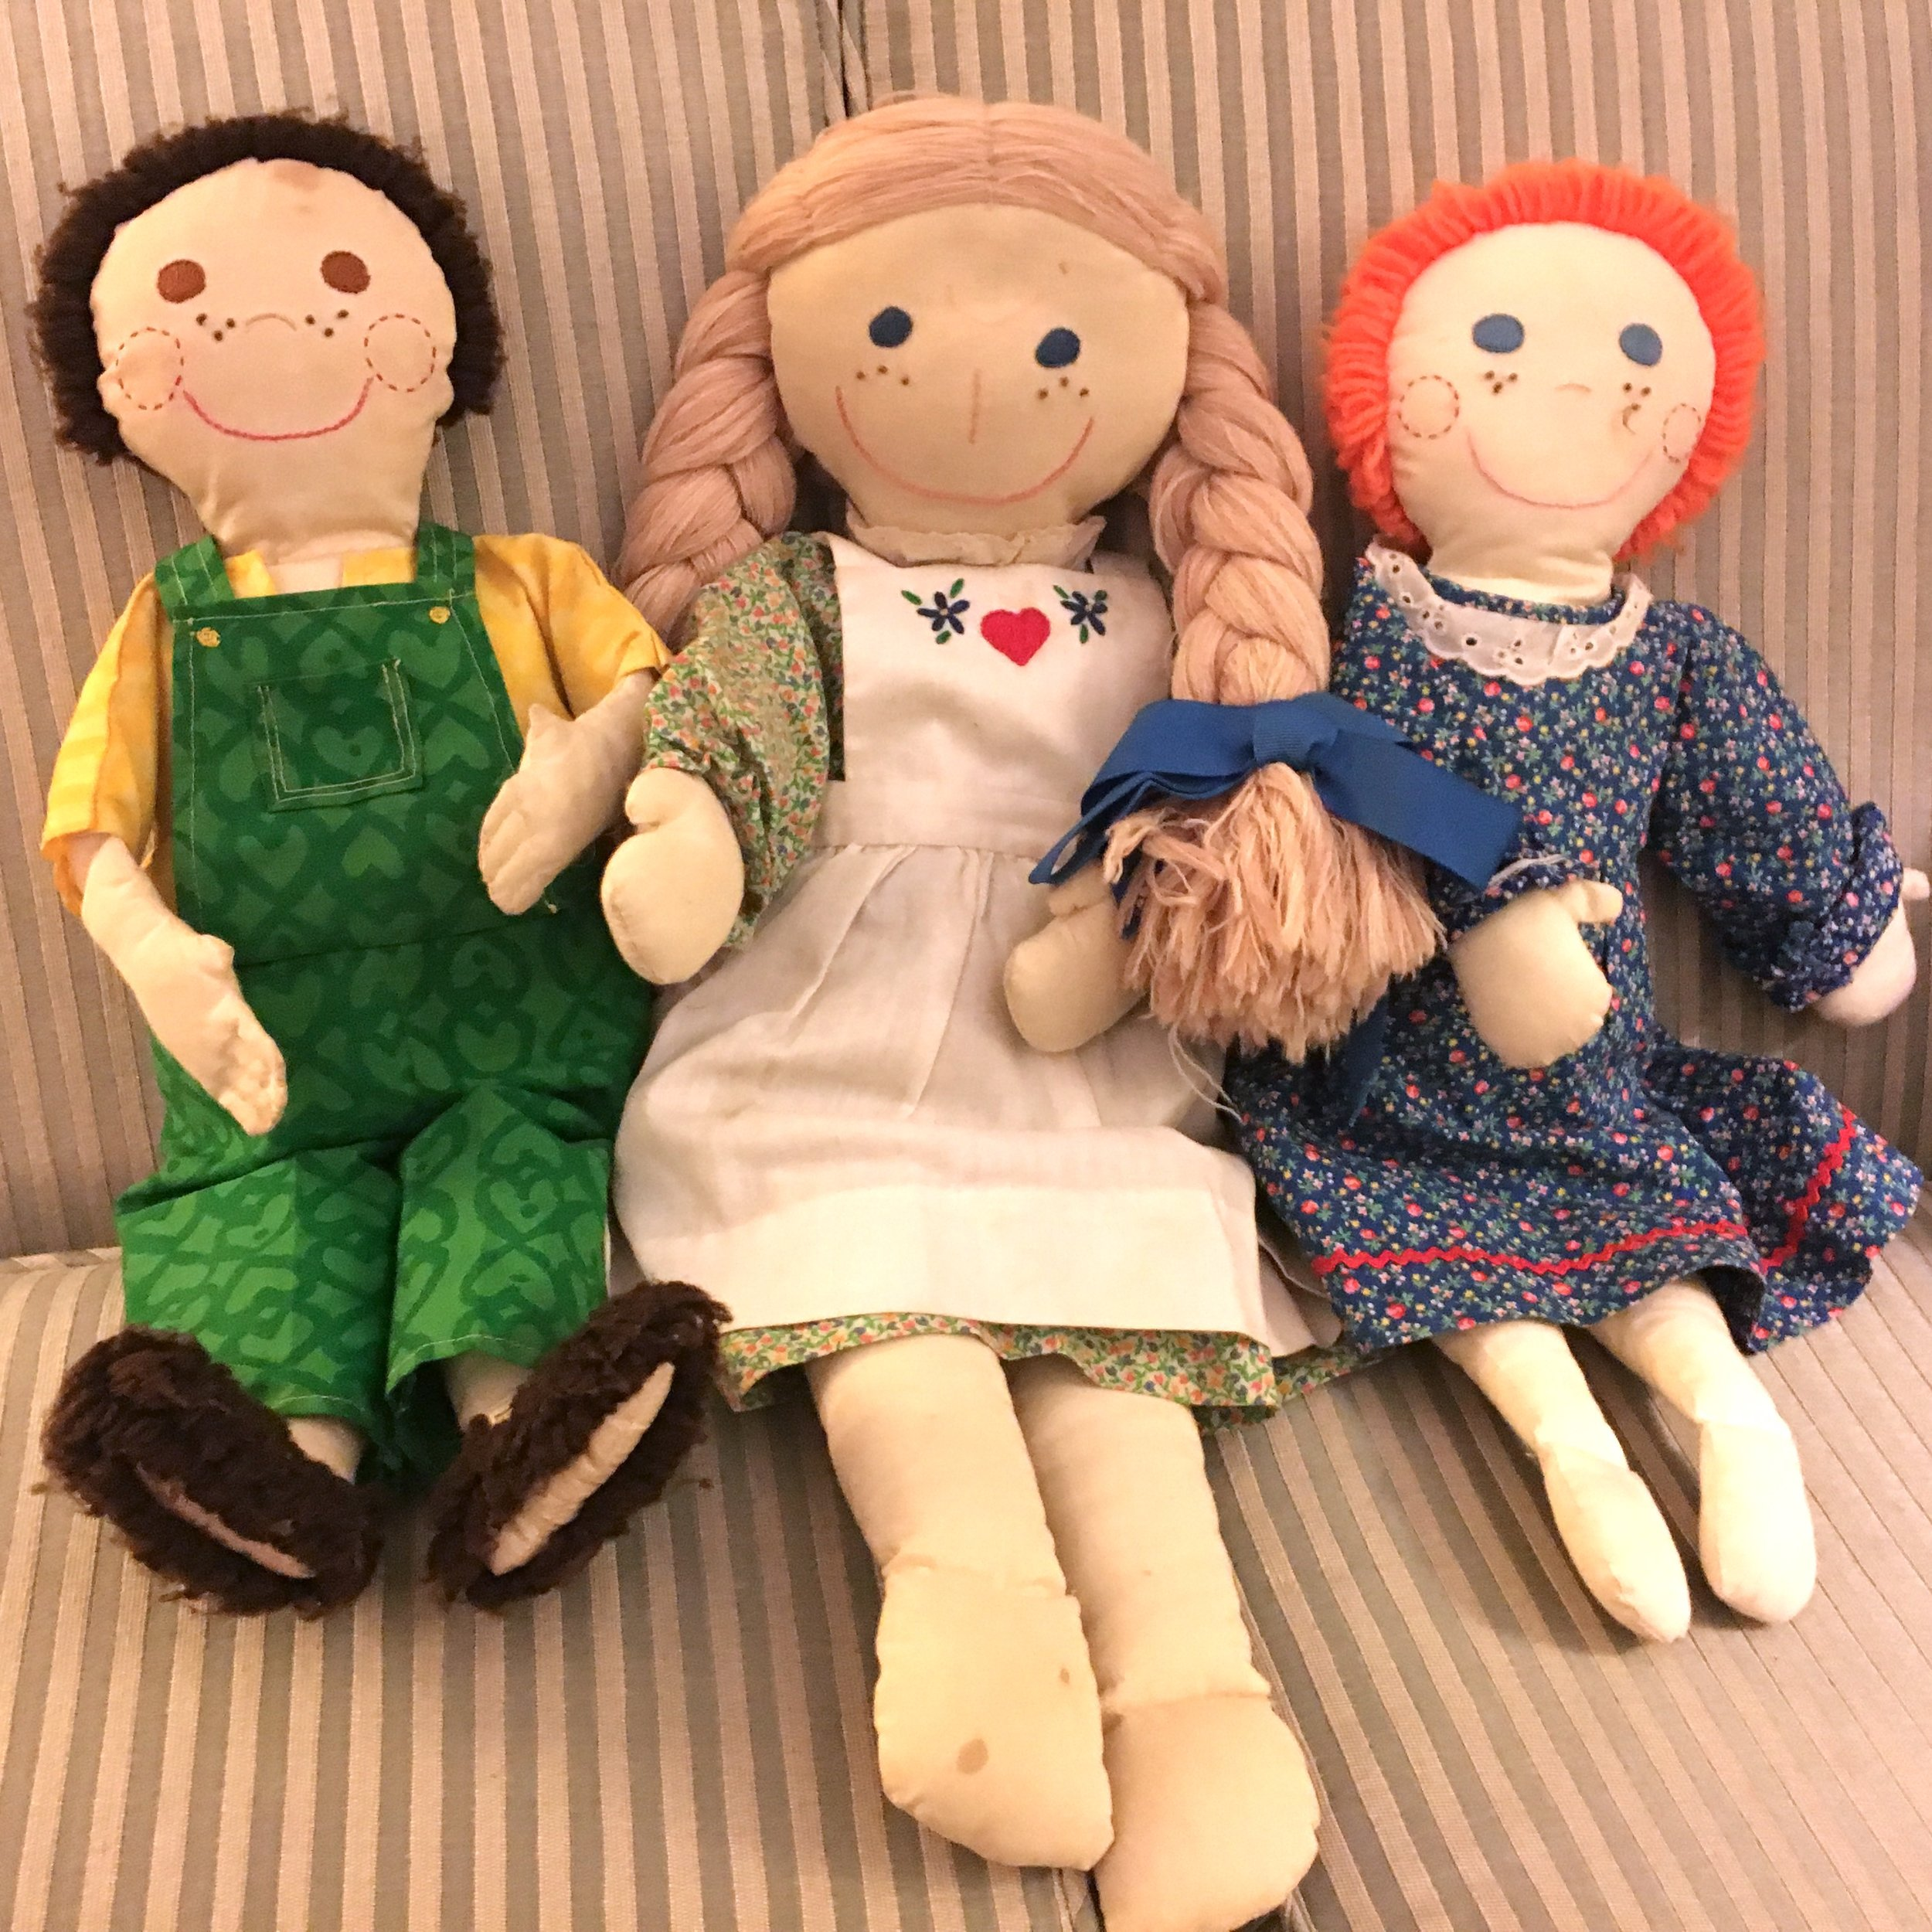 3 of my dolls from the late 1970's and early 1980's